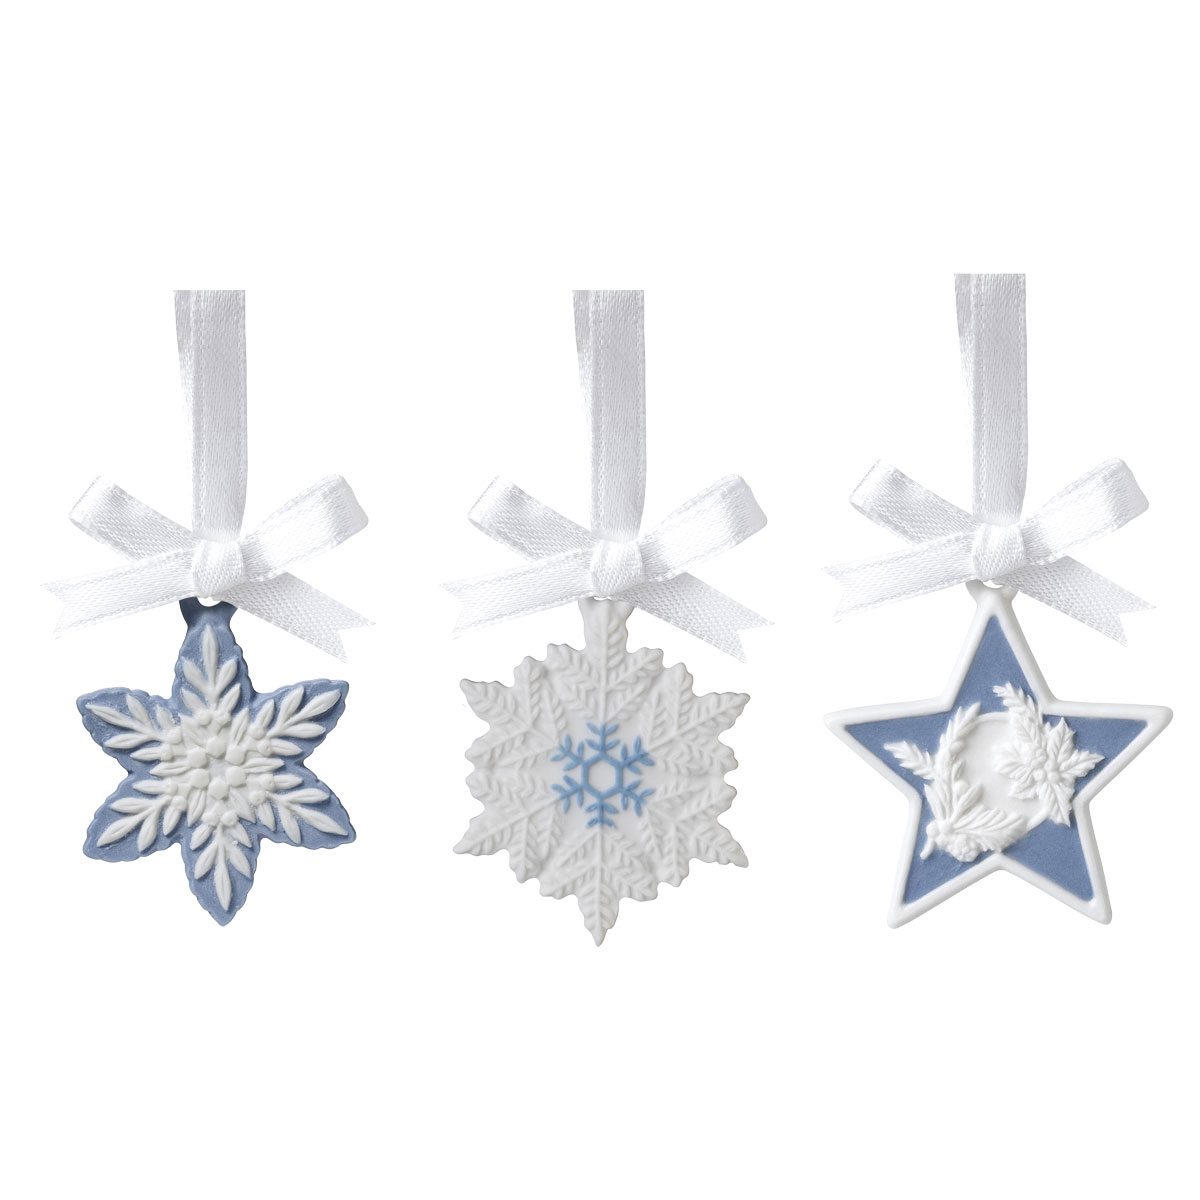 Wedgwood 2021 Snowflakes and Star Charm Ornaments, Set of 3